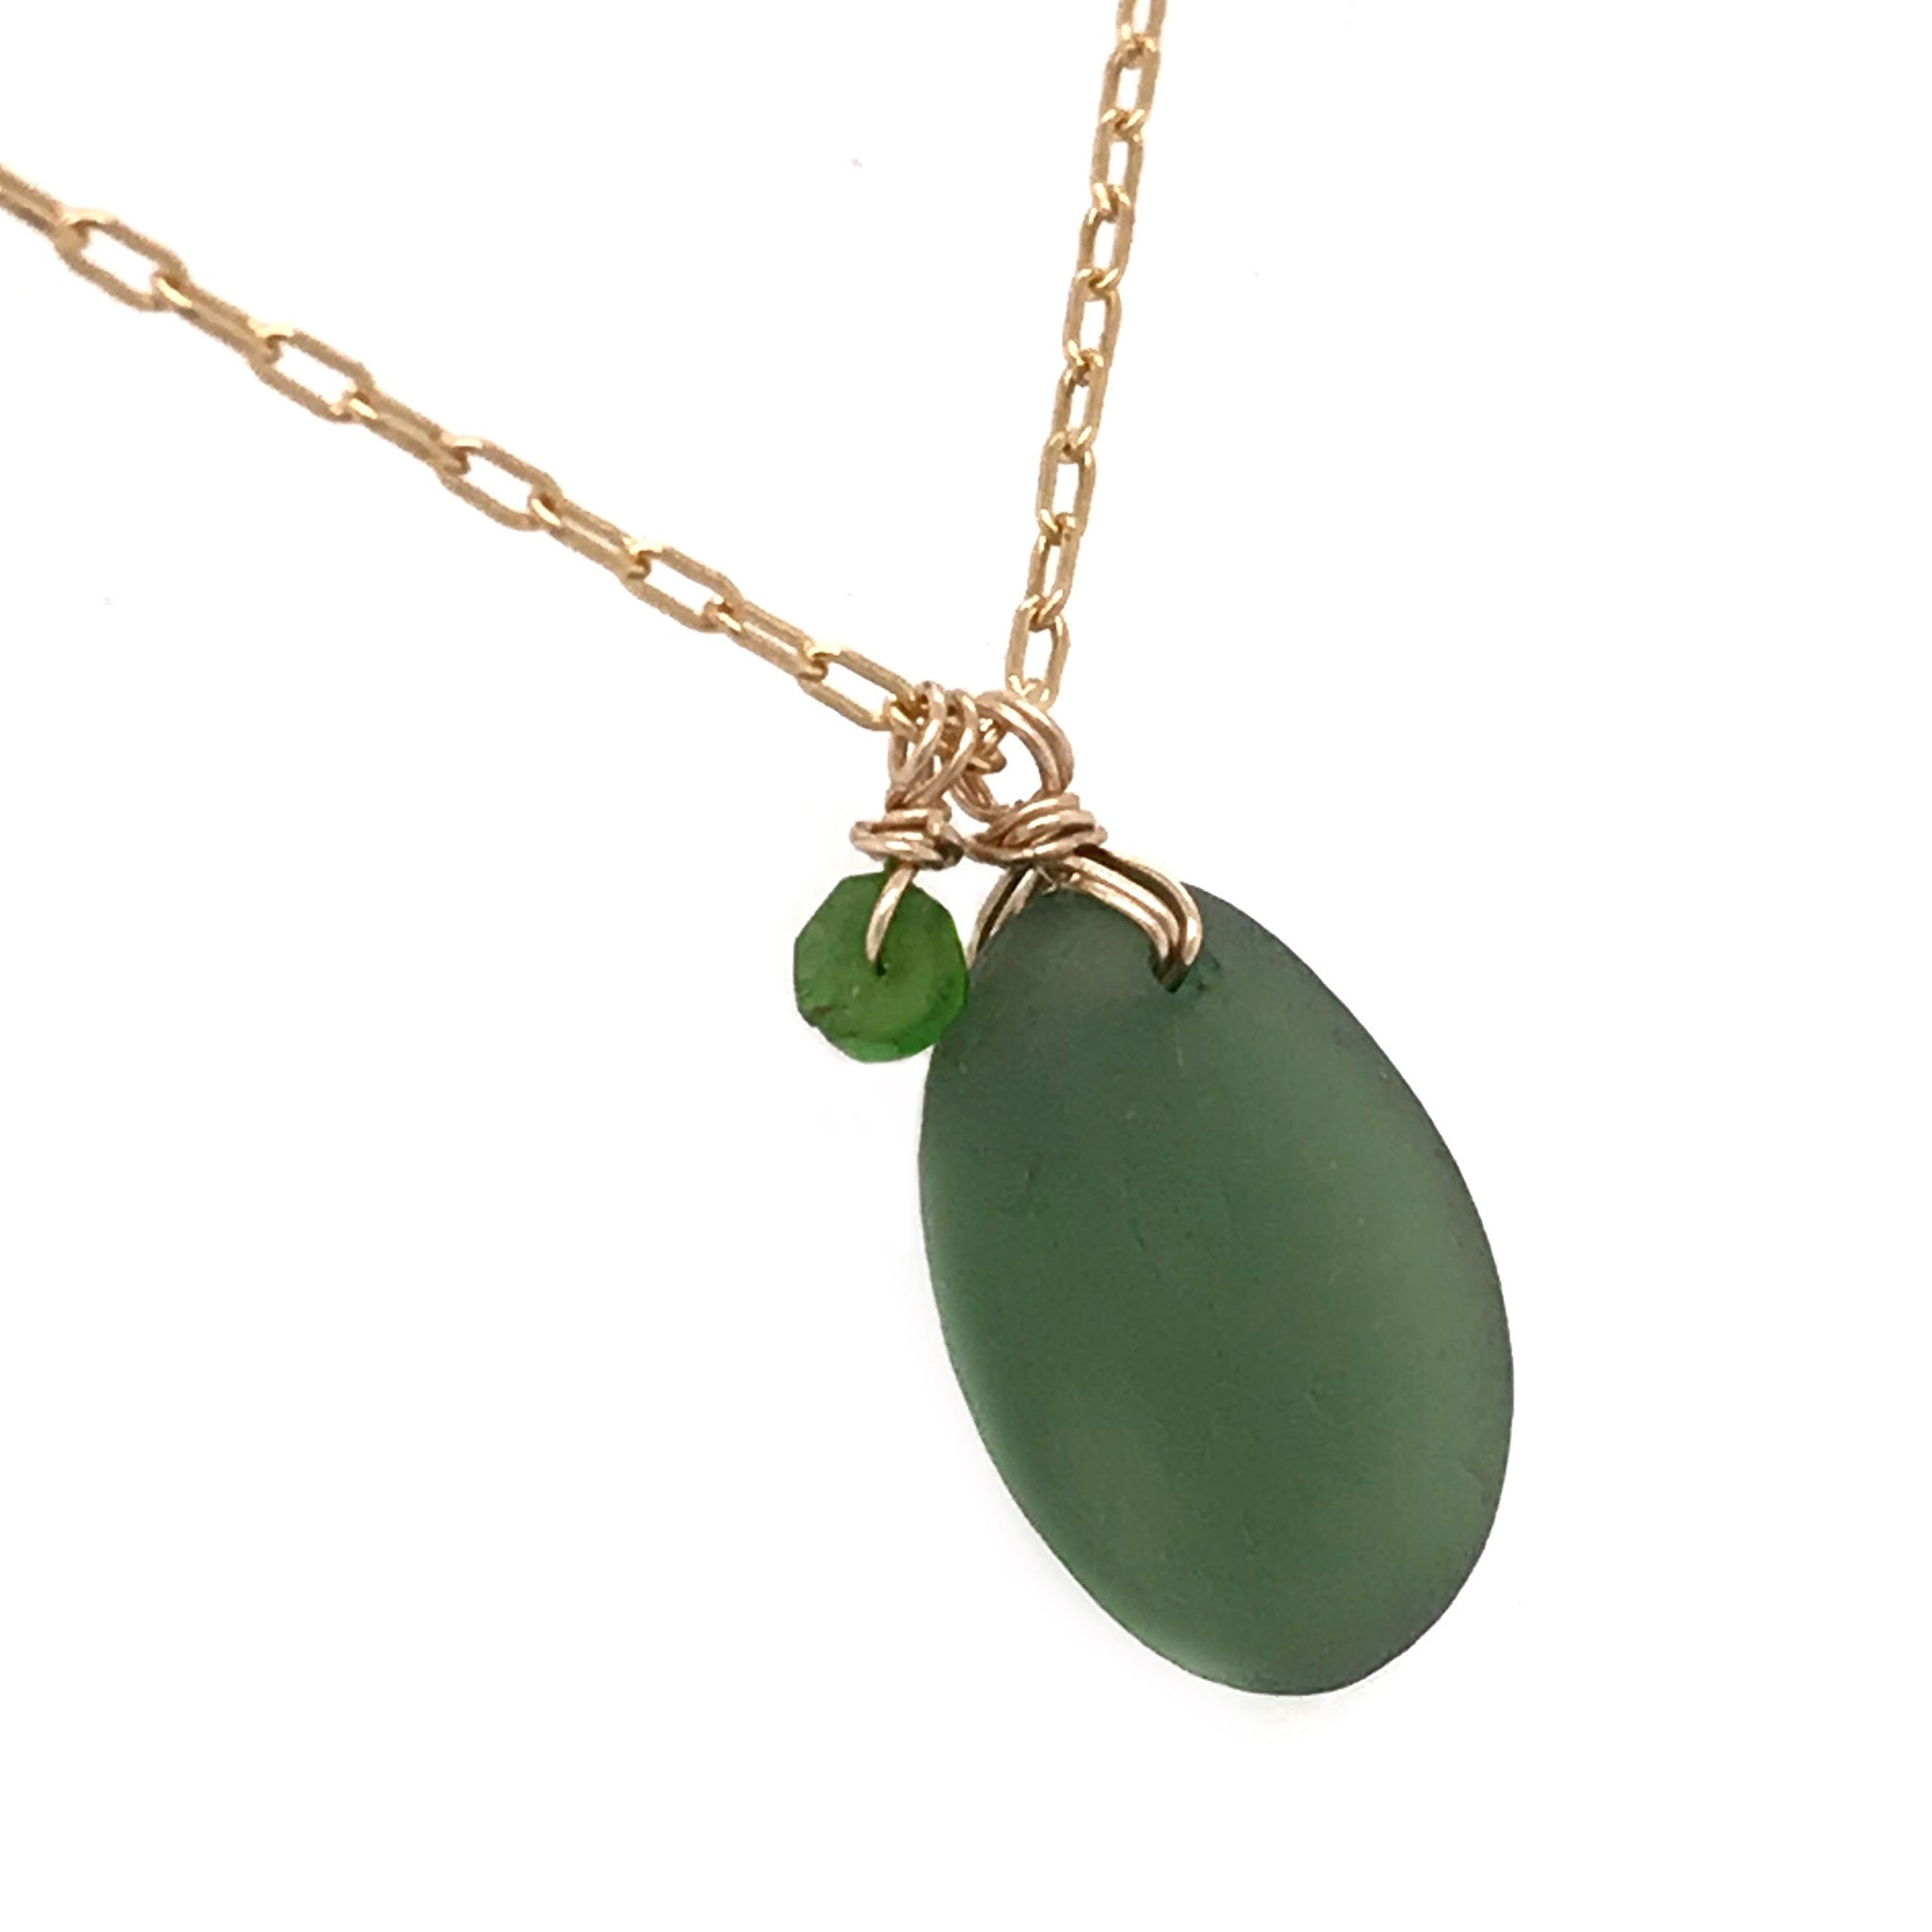 green seaglass on gold necklace with tsavorite stones kriket Broadhurst jewellery